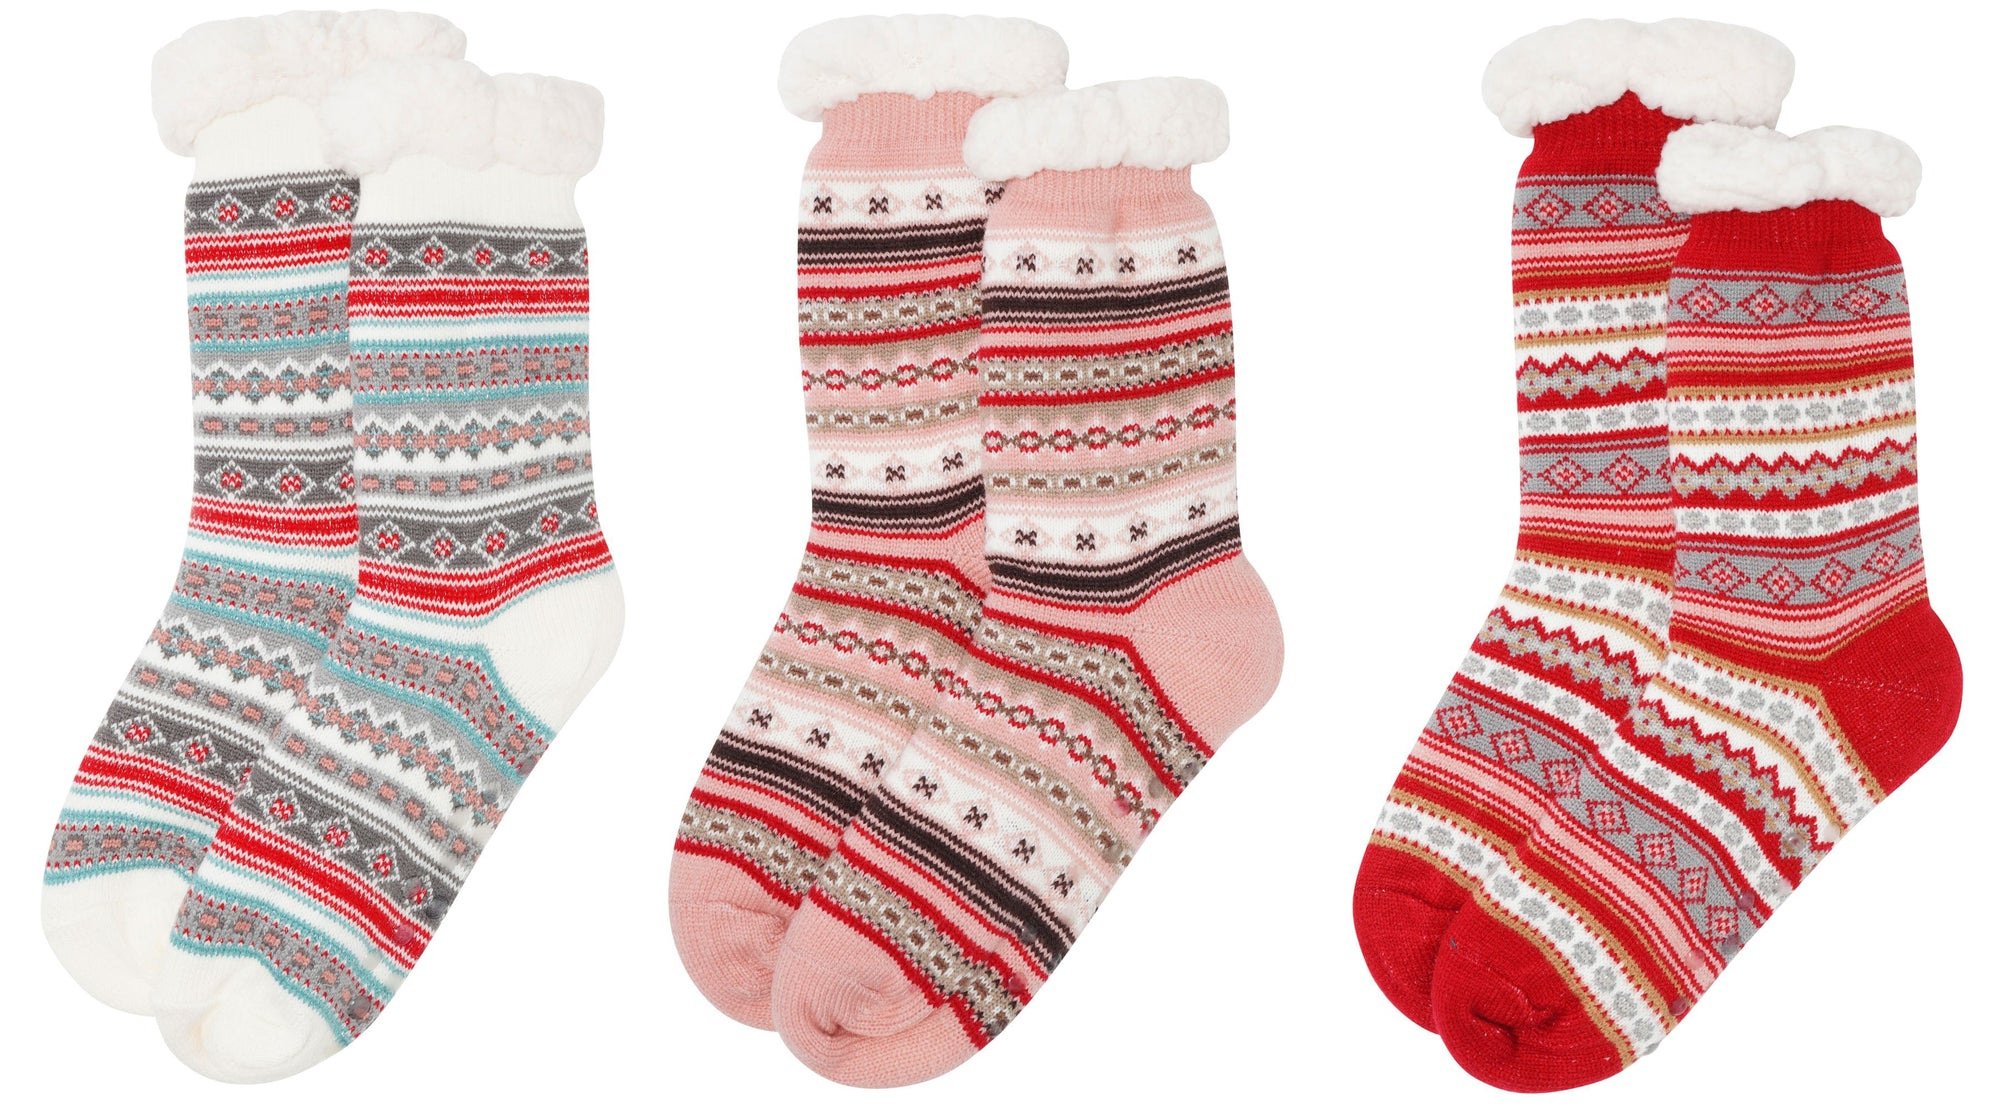 OCTAVE Ladies Fleece Lined Fairisle Cosy Thermal Slipper Socks With Grip Soles